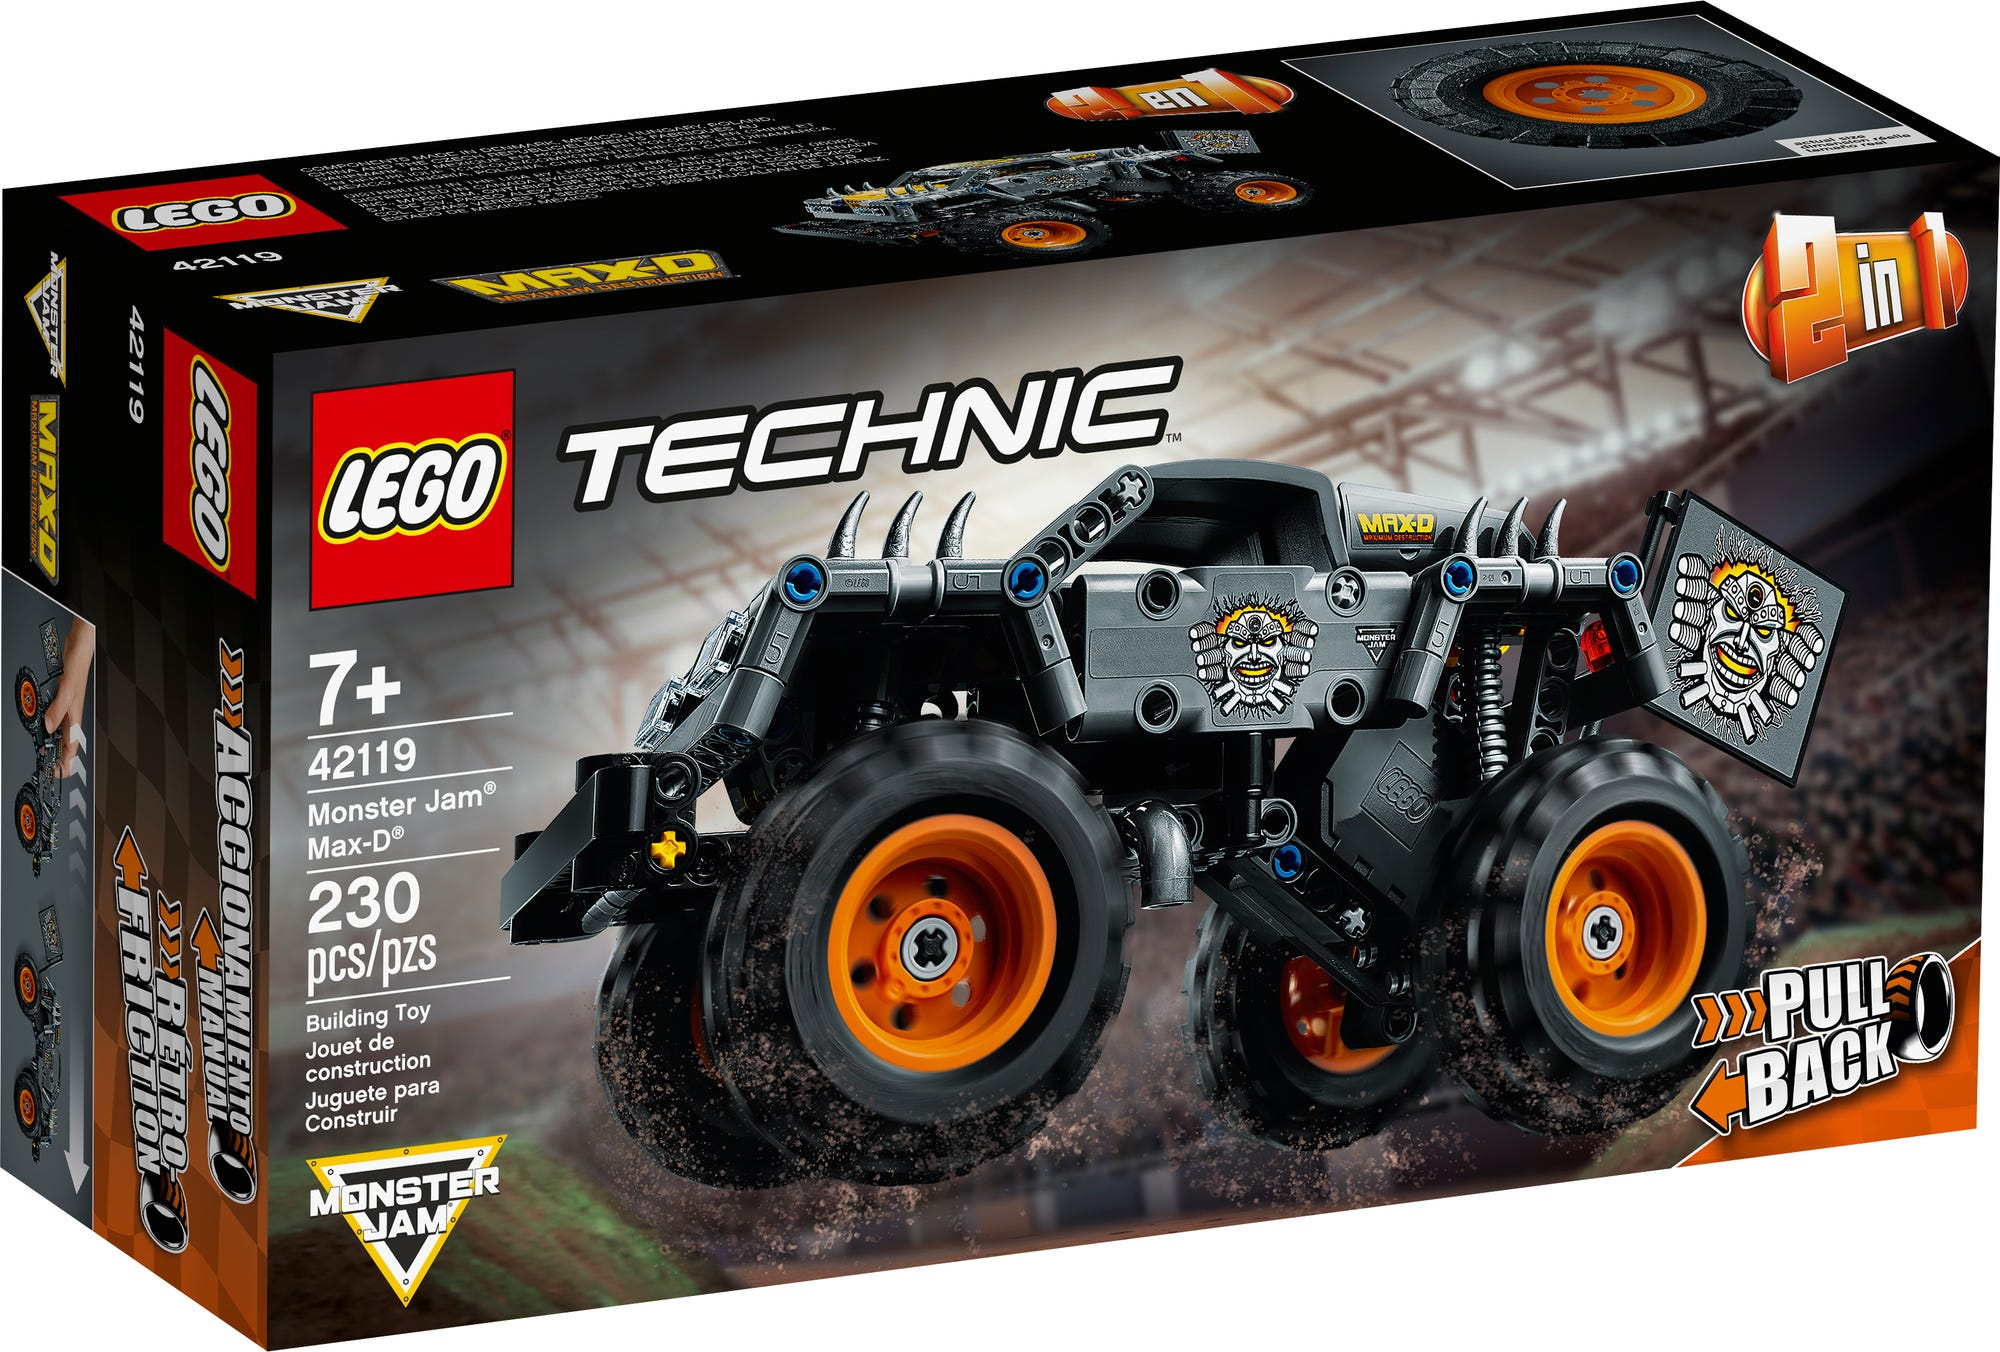 LEGO Technic 42119 Monster Jam Max D (2)